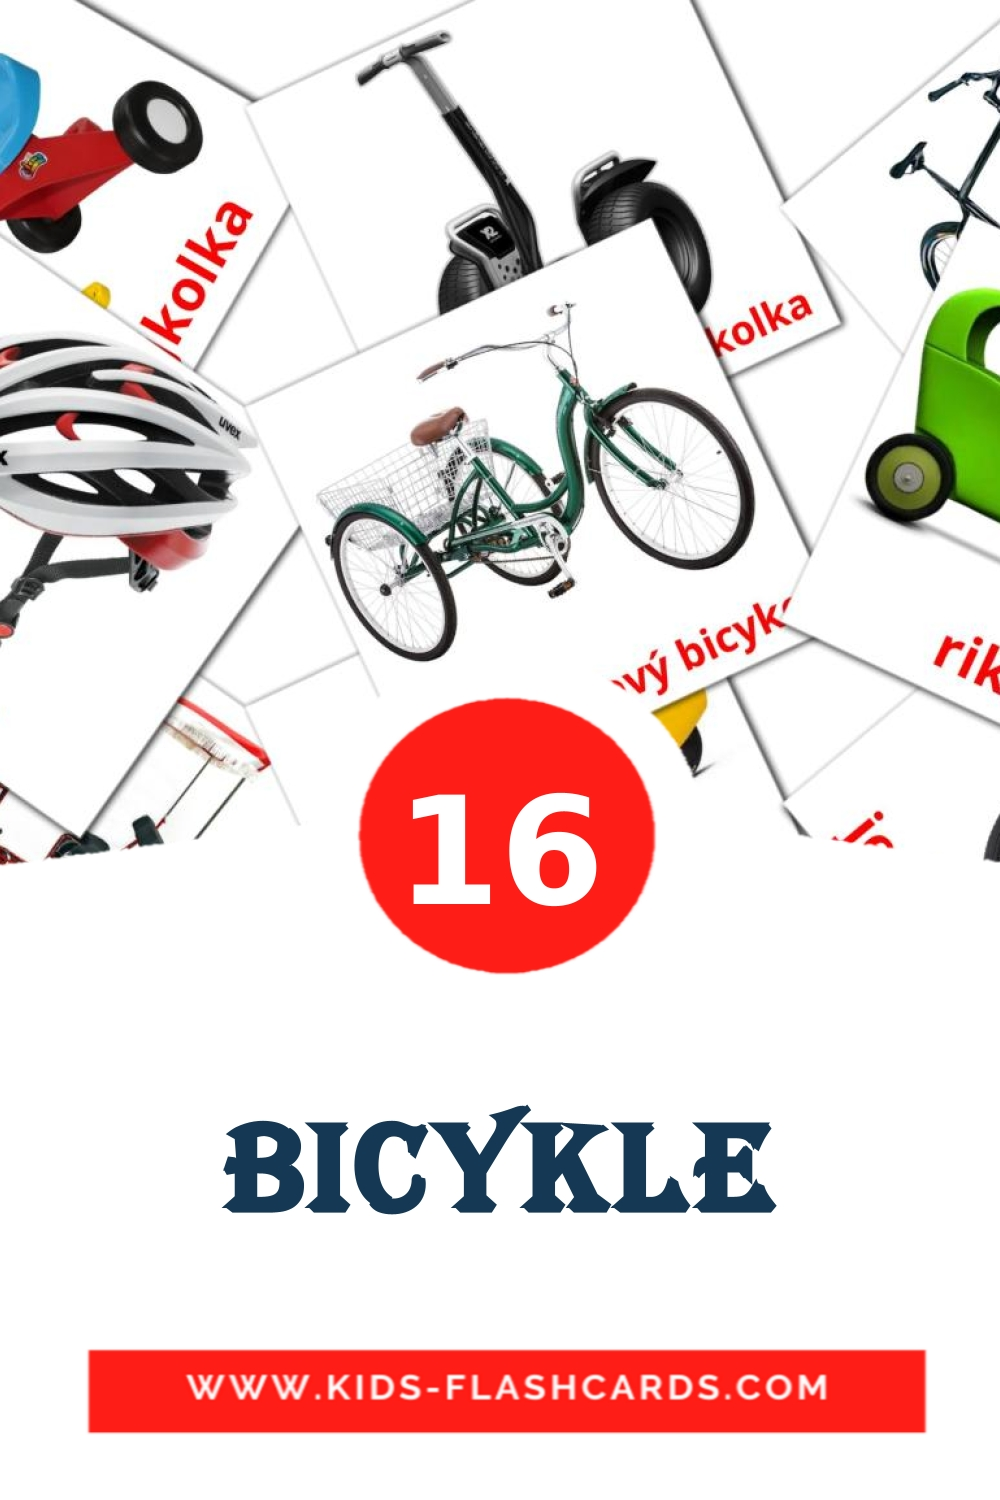 16 bicykle Picture Cards for Kindergarden in slovak